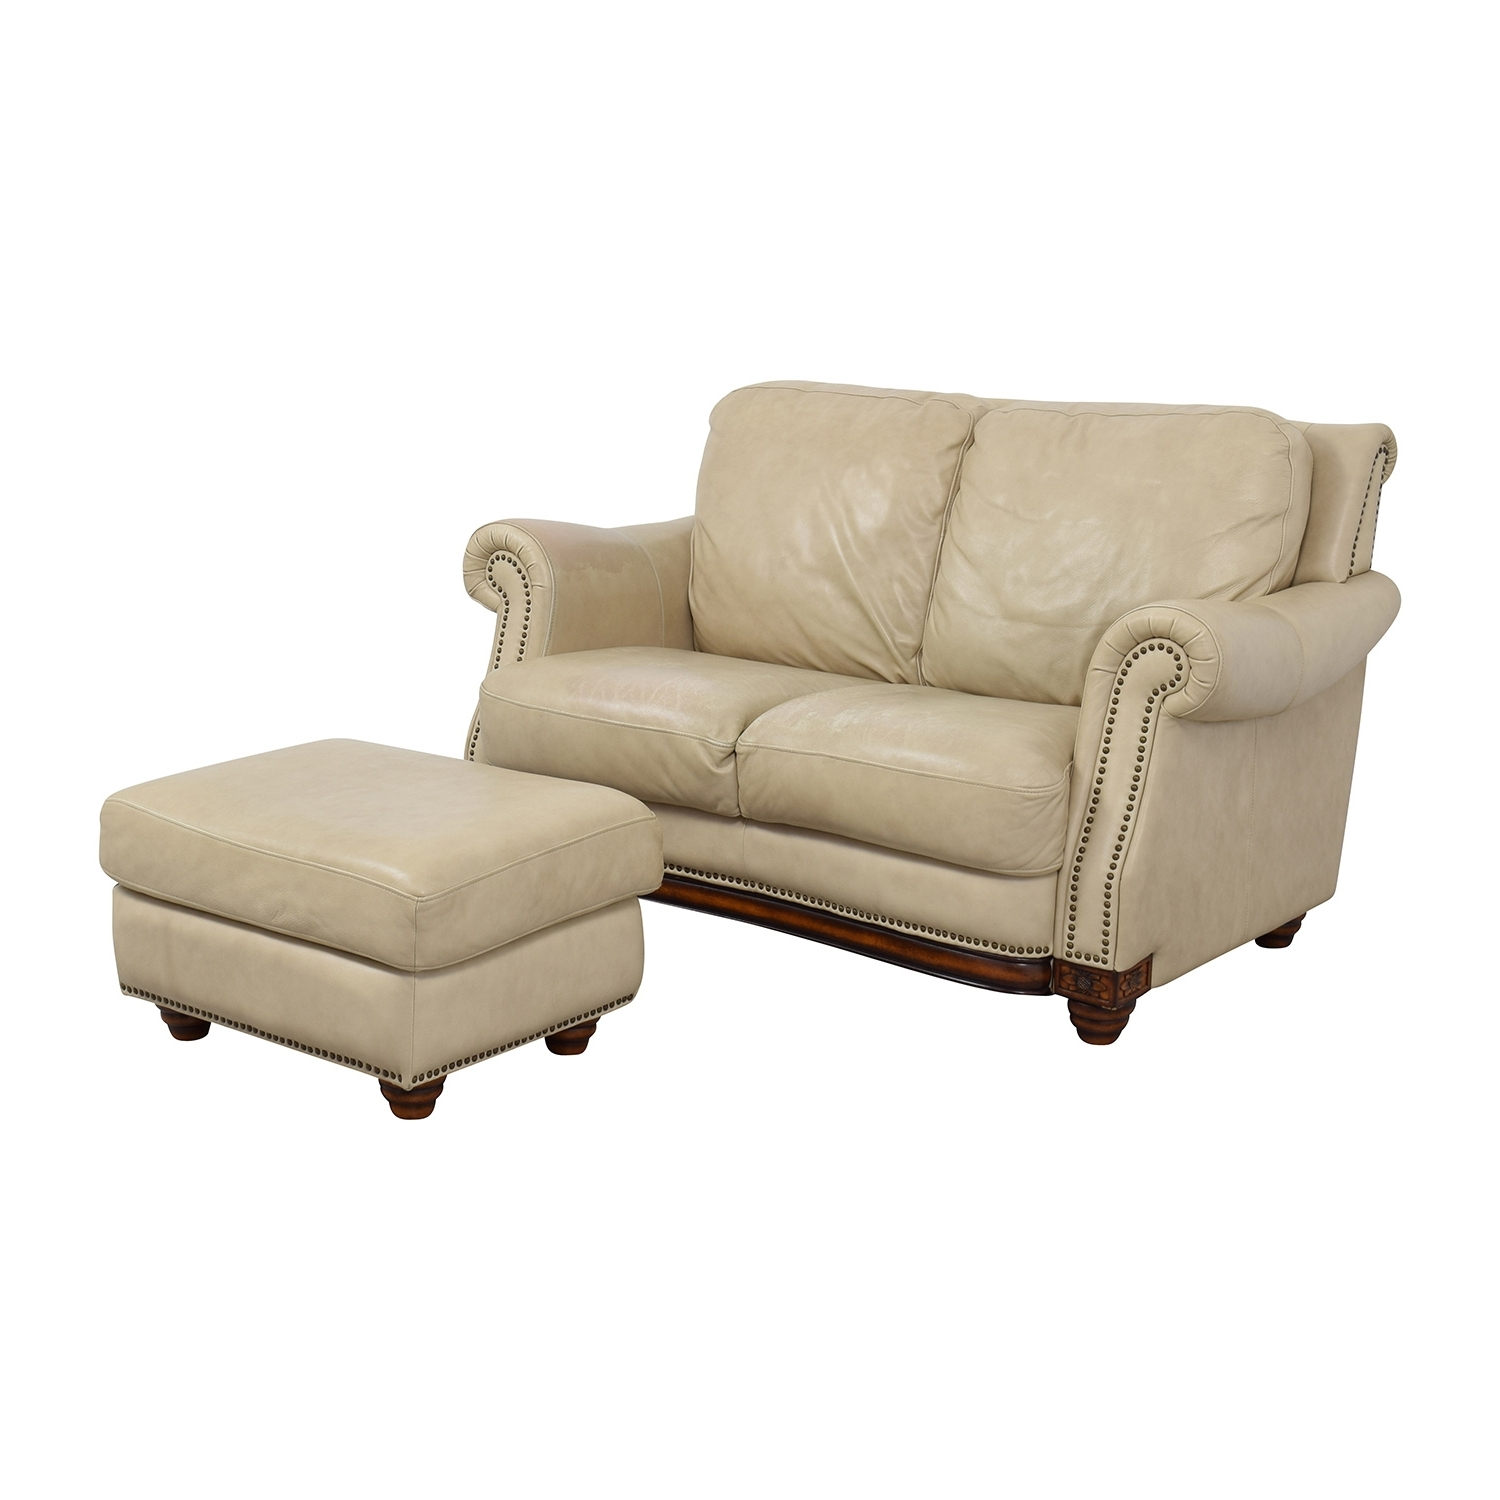 [%74% Off – Raymour & Flanigan Raymour & Flanigan Studded Tan With 2018 Loveseats With Ottoman|Loveseats With Ottoman In Widely Used 74% Off – Raymour & Flanigan Raymour & Flanigan Studded Tan|Preferred Loveseats With Ottoman In 74% Off – Raymour & Flanigan Raymour & Flanigan Studded Tan|Fashionable 74% Off – Raymour & Flanigan Raymour & Flanigan Studded Tan For Loveseats With Ottoman%] (View 4 of 20)